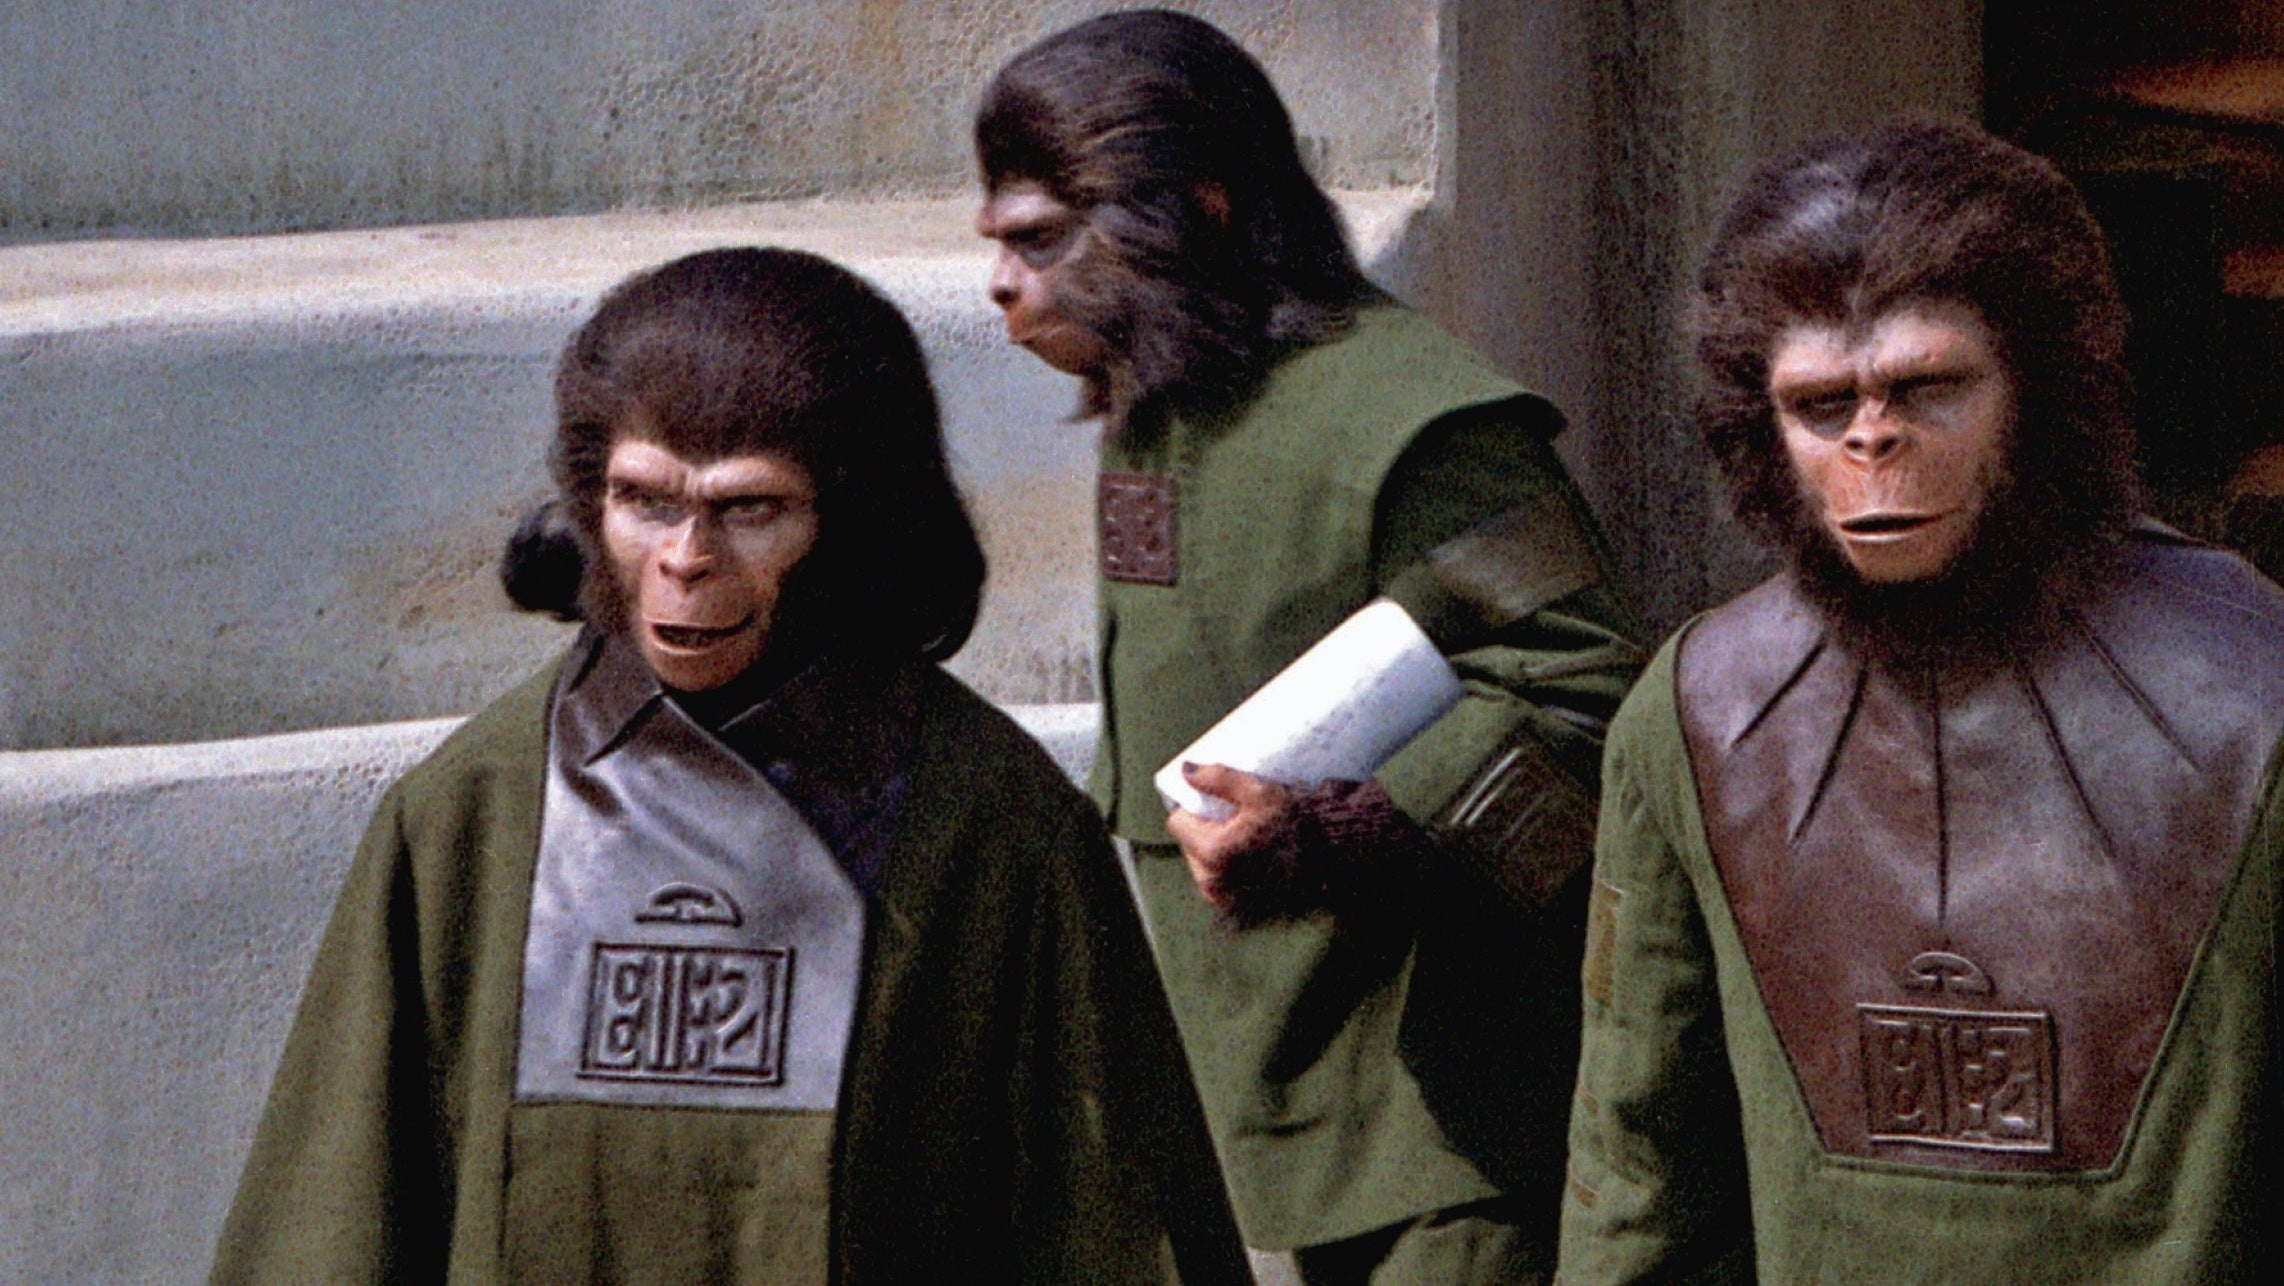 Go Behind The Scenes Of The OriginalPlanet Of The Apes In This Glorious New Book